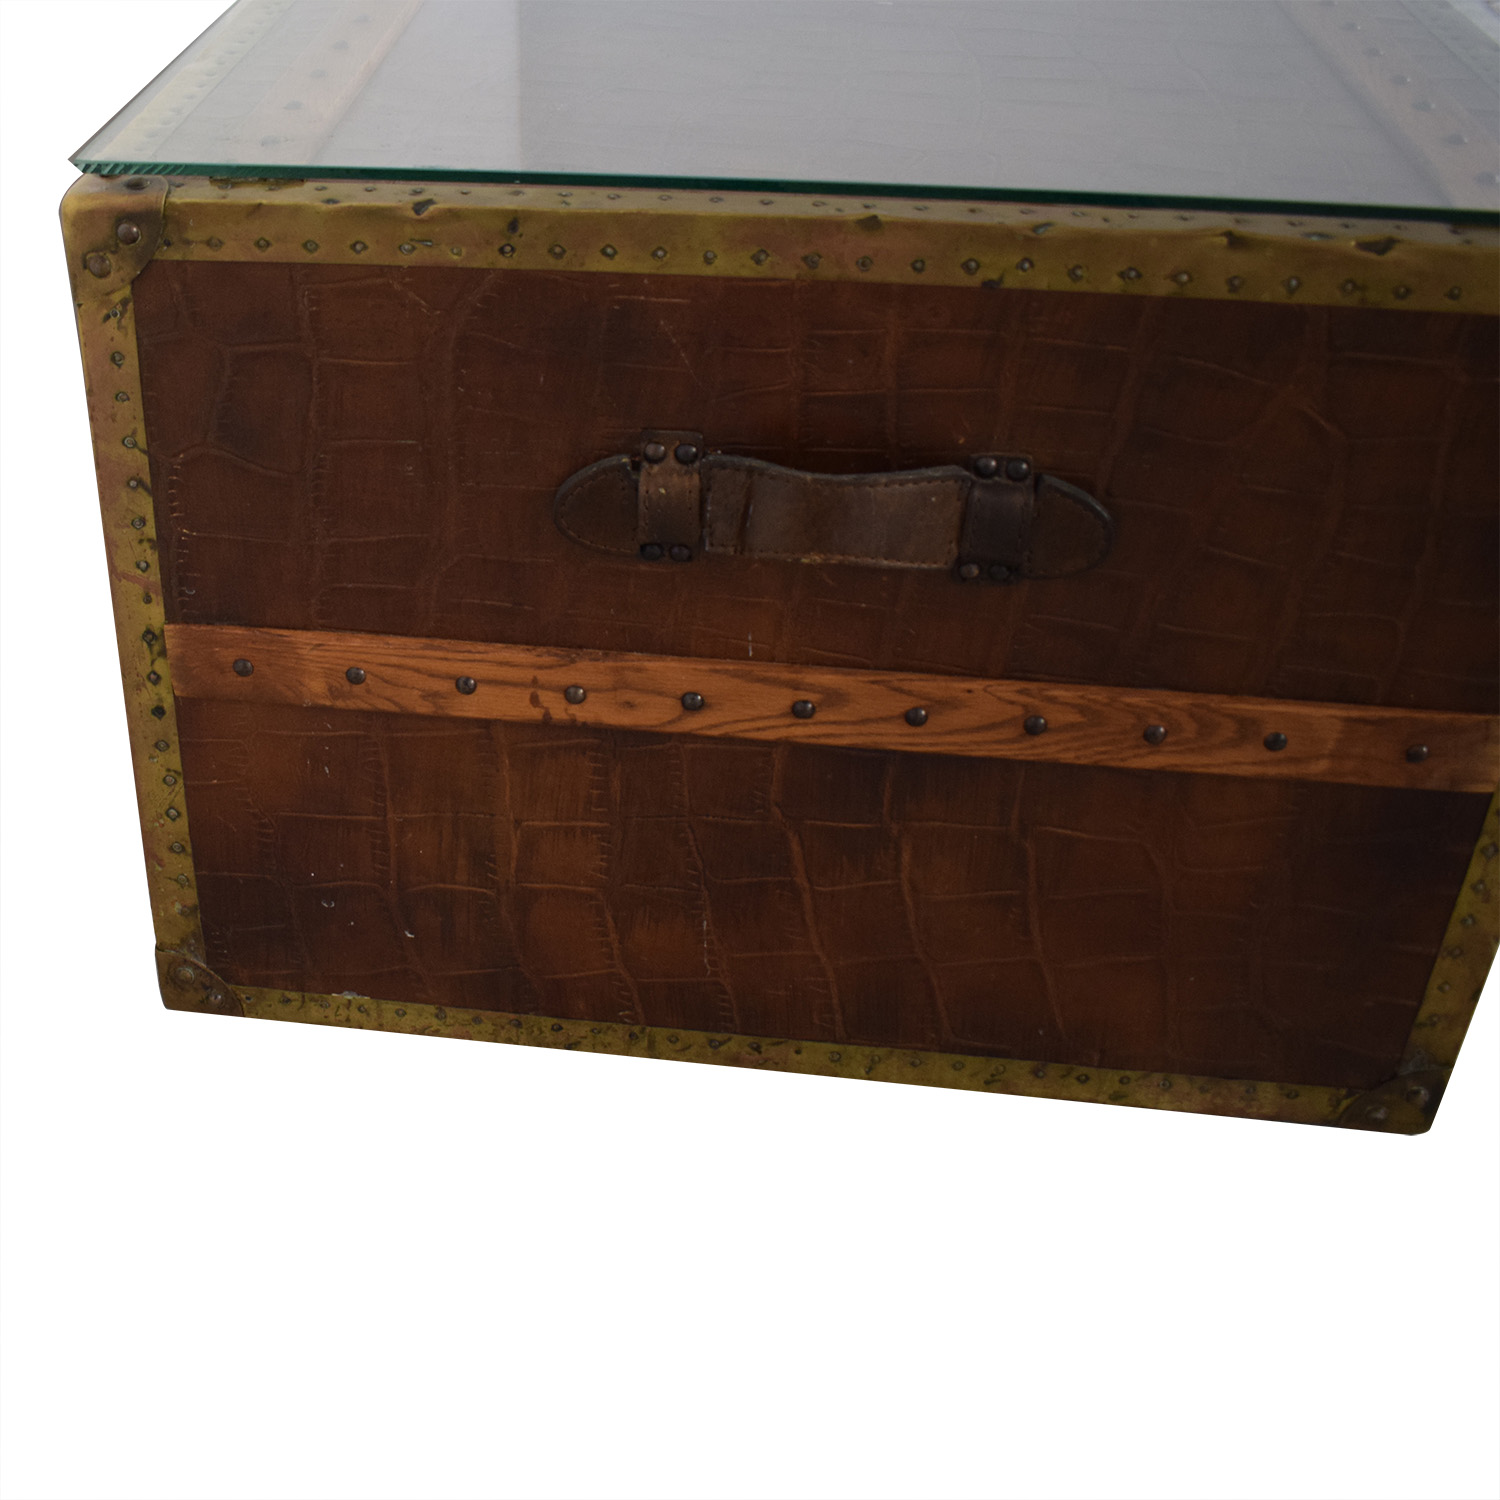 buy ABC Carpet & Home ABC Carpet & Home Steamer Trunk Coffee Table online